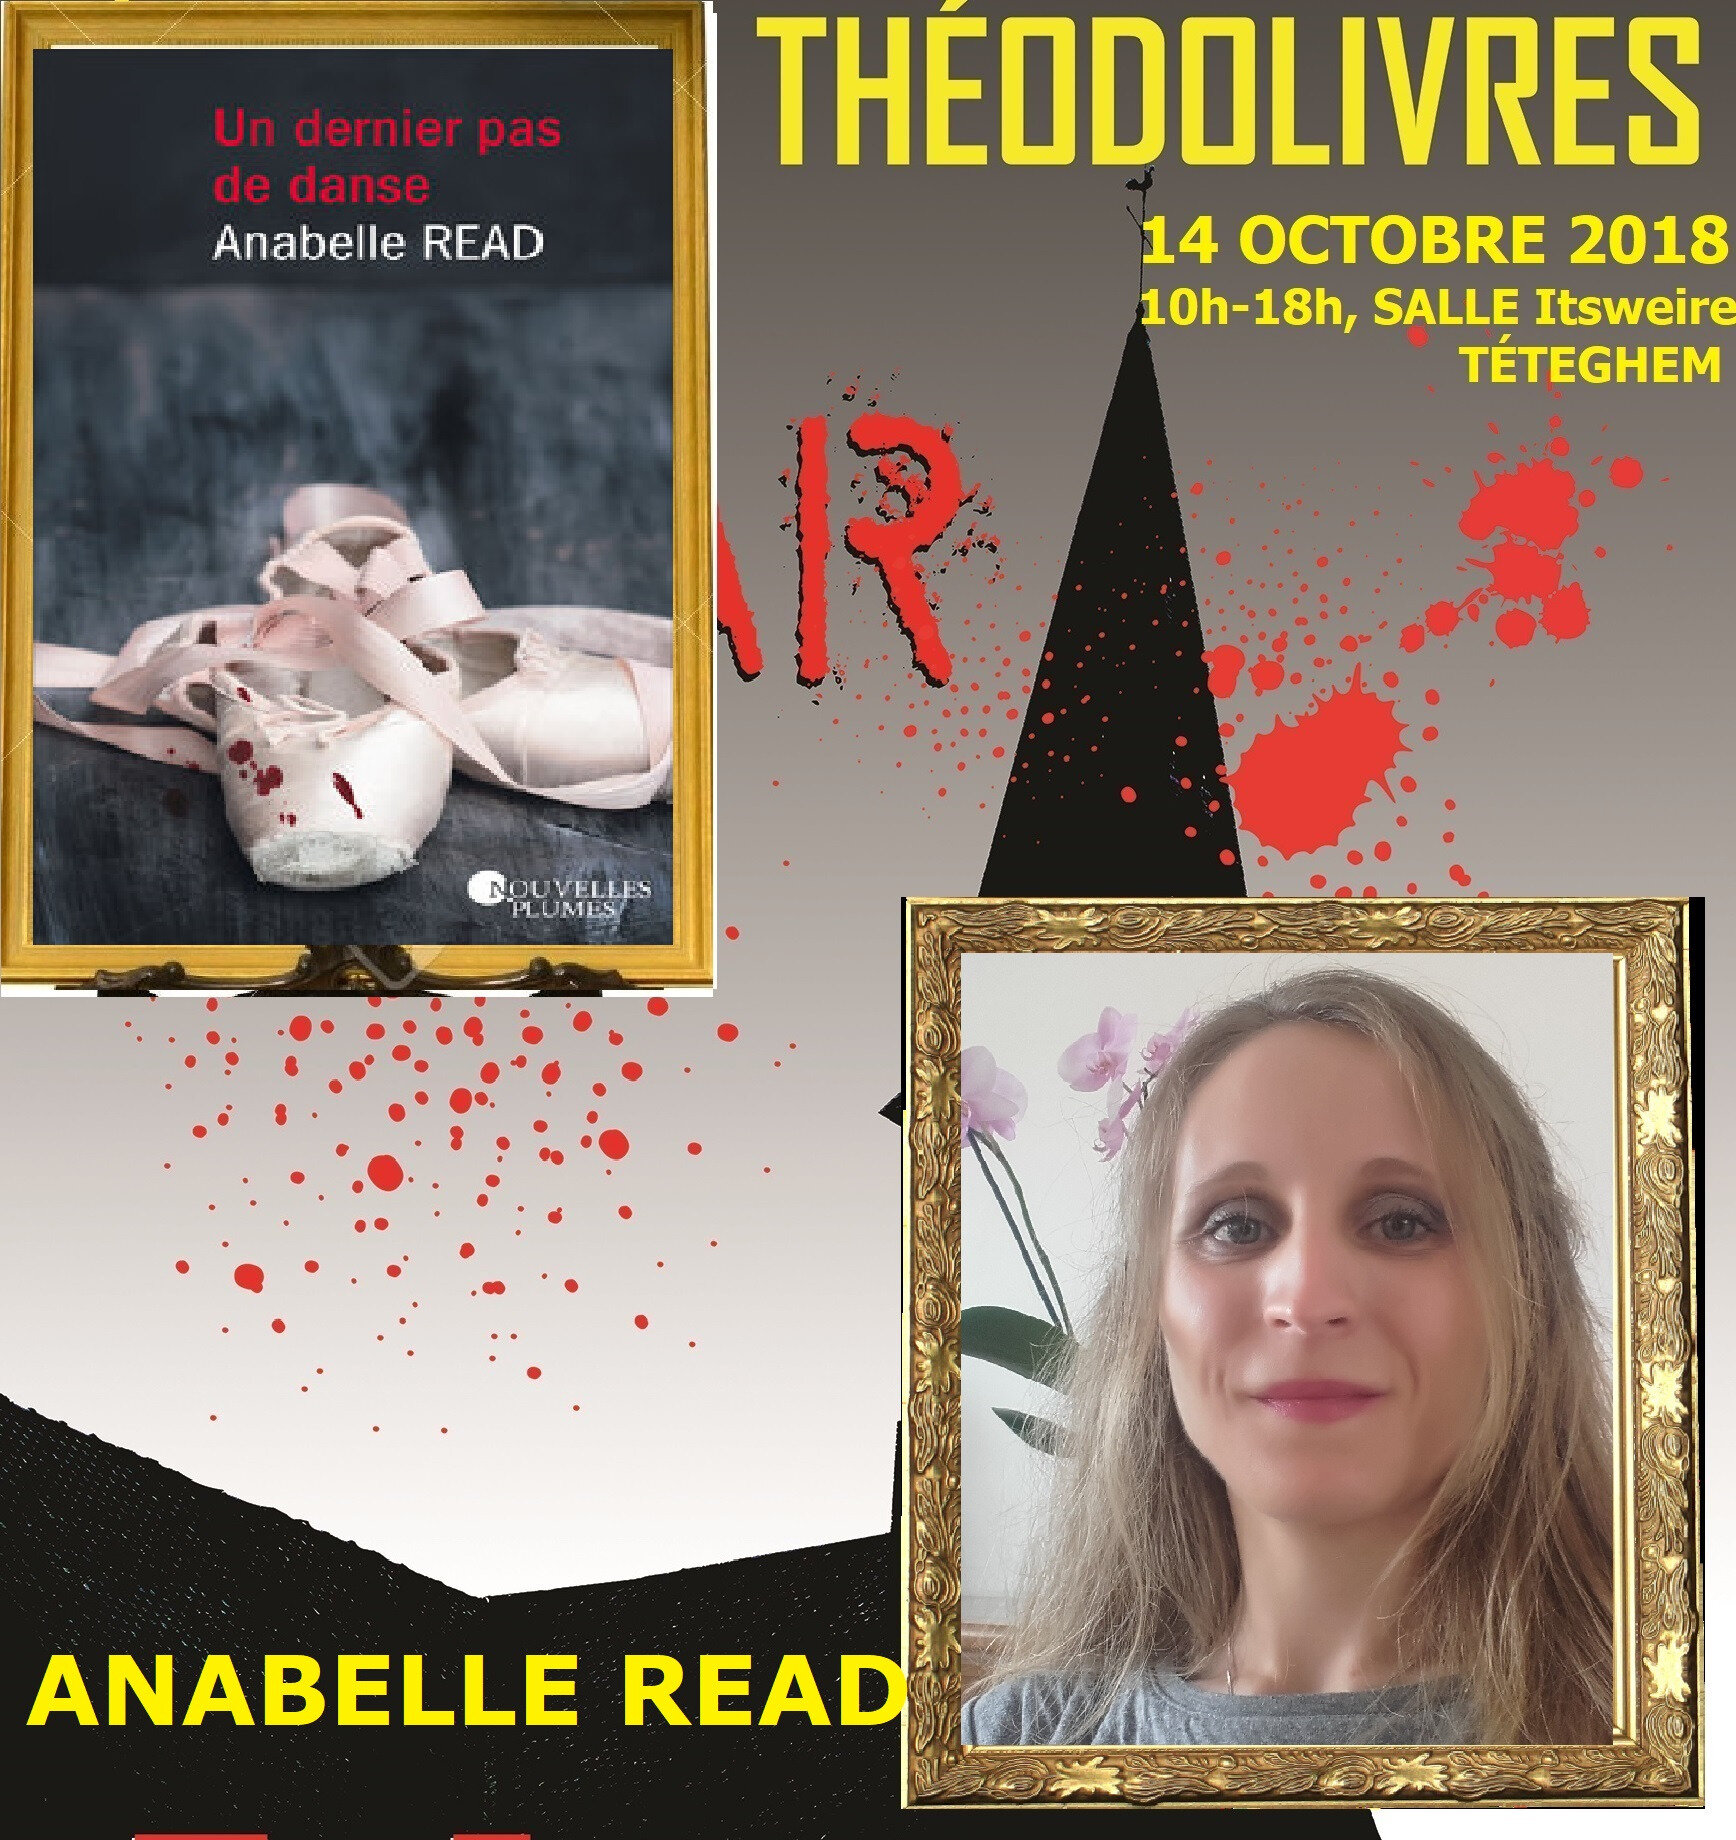 ANABELLE READ